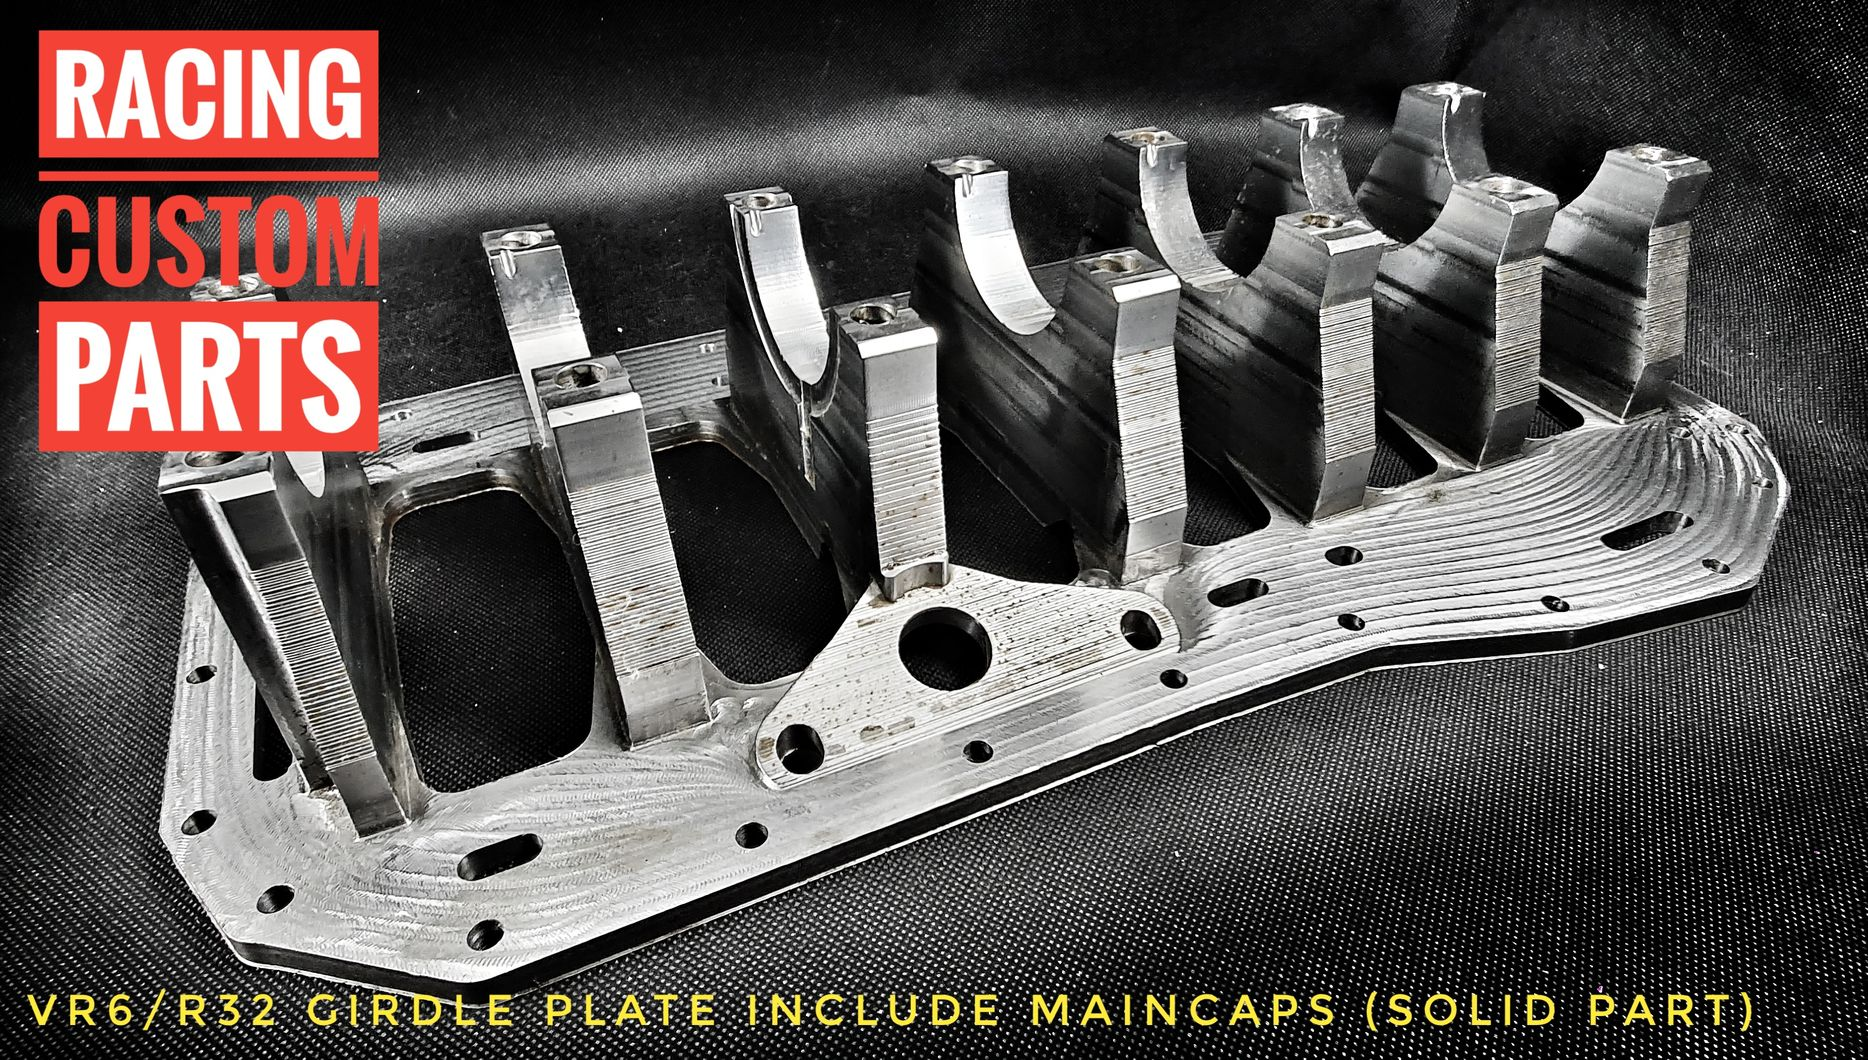 VR6 R32 Audi vw solid girdle plate maincaps 1000+ horse power girdle plate racing custom parts billet cnc